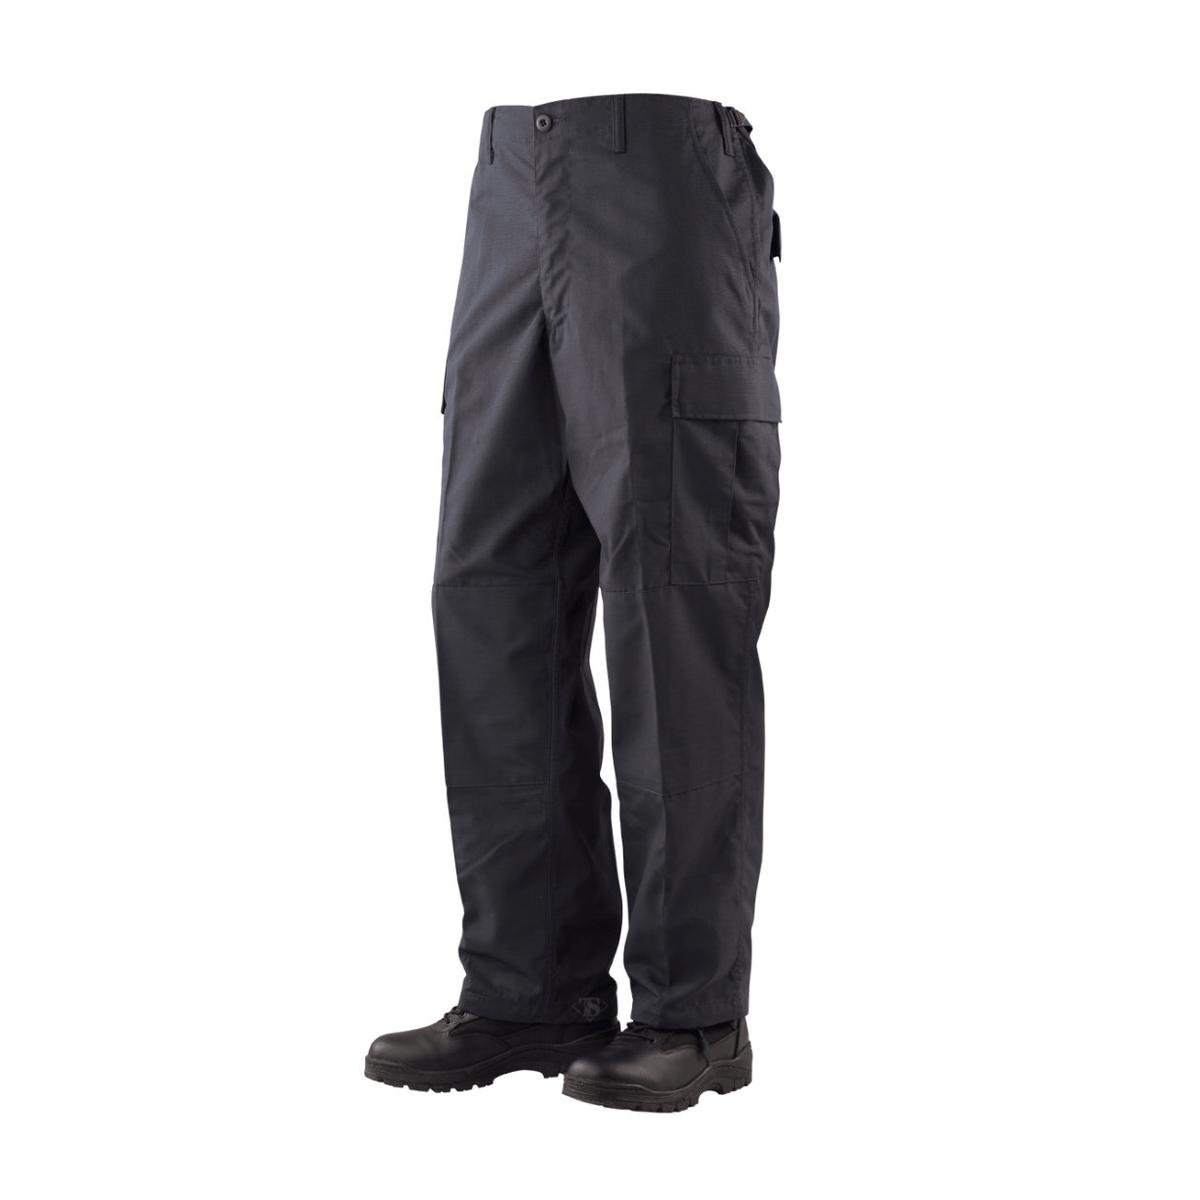 Tru-Spec TSP-1995044 Gen-1 Police Battle Dress Uniform Pants, Black - Short - Medium